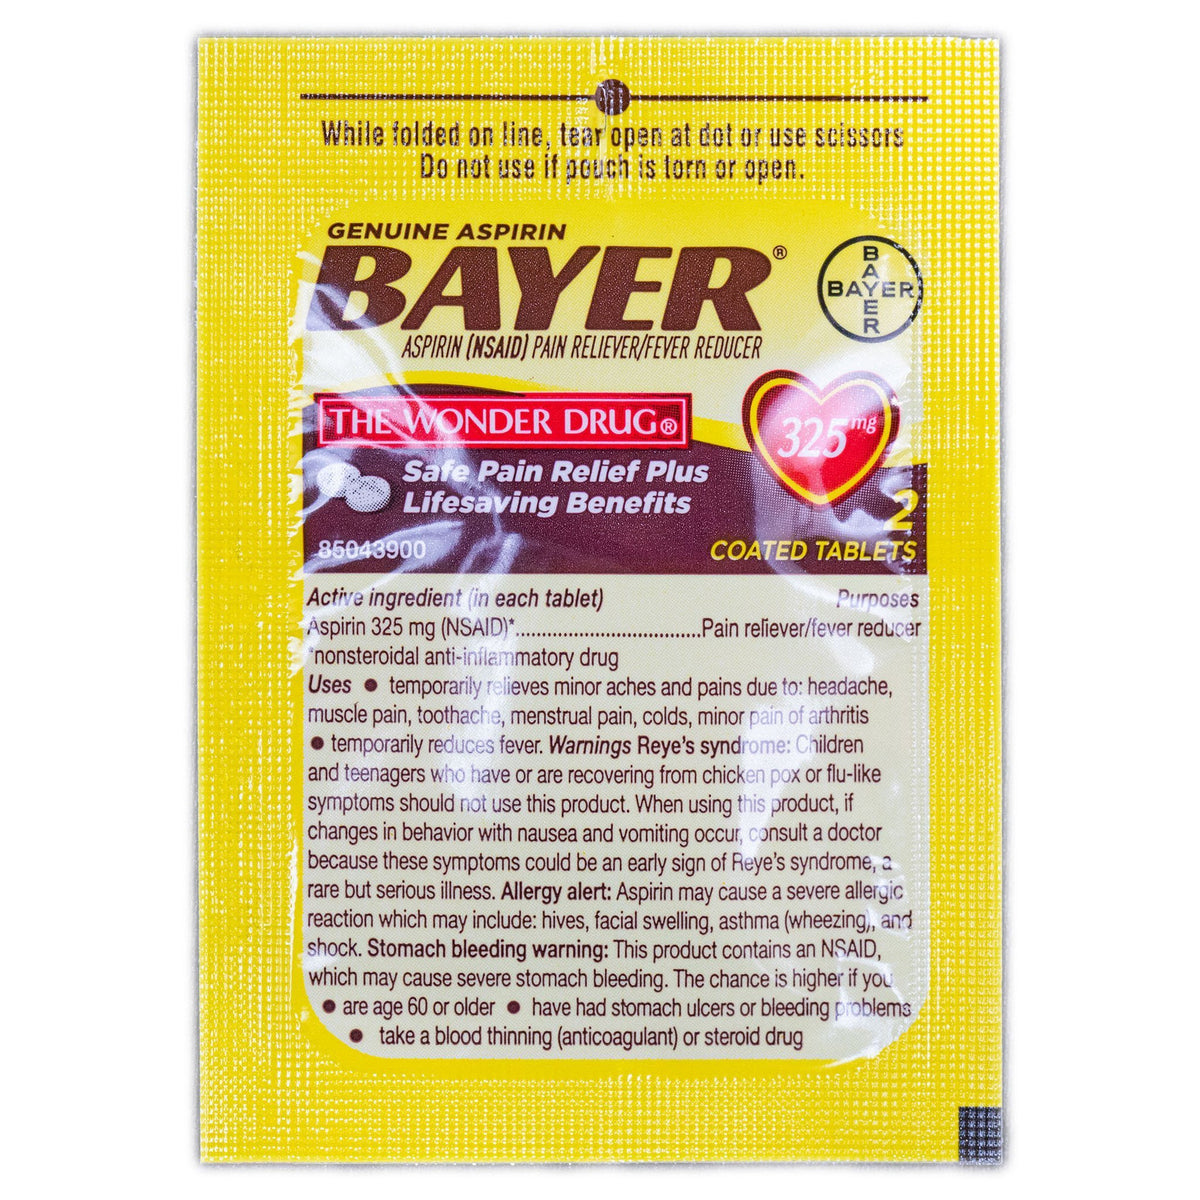 Bayer Aspirin Packet